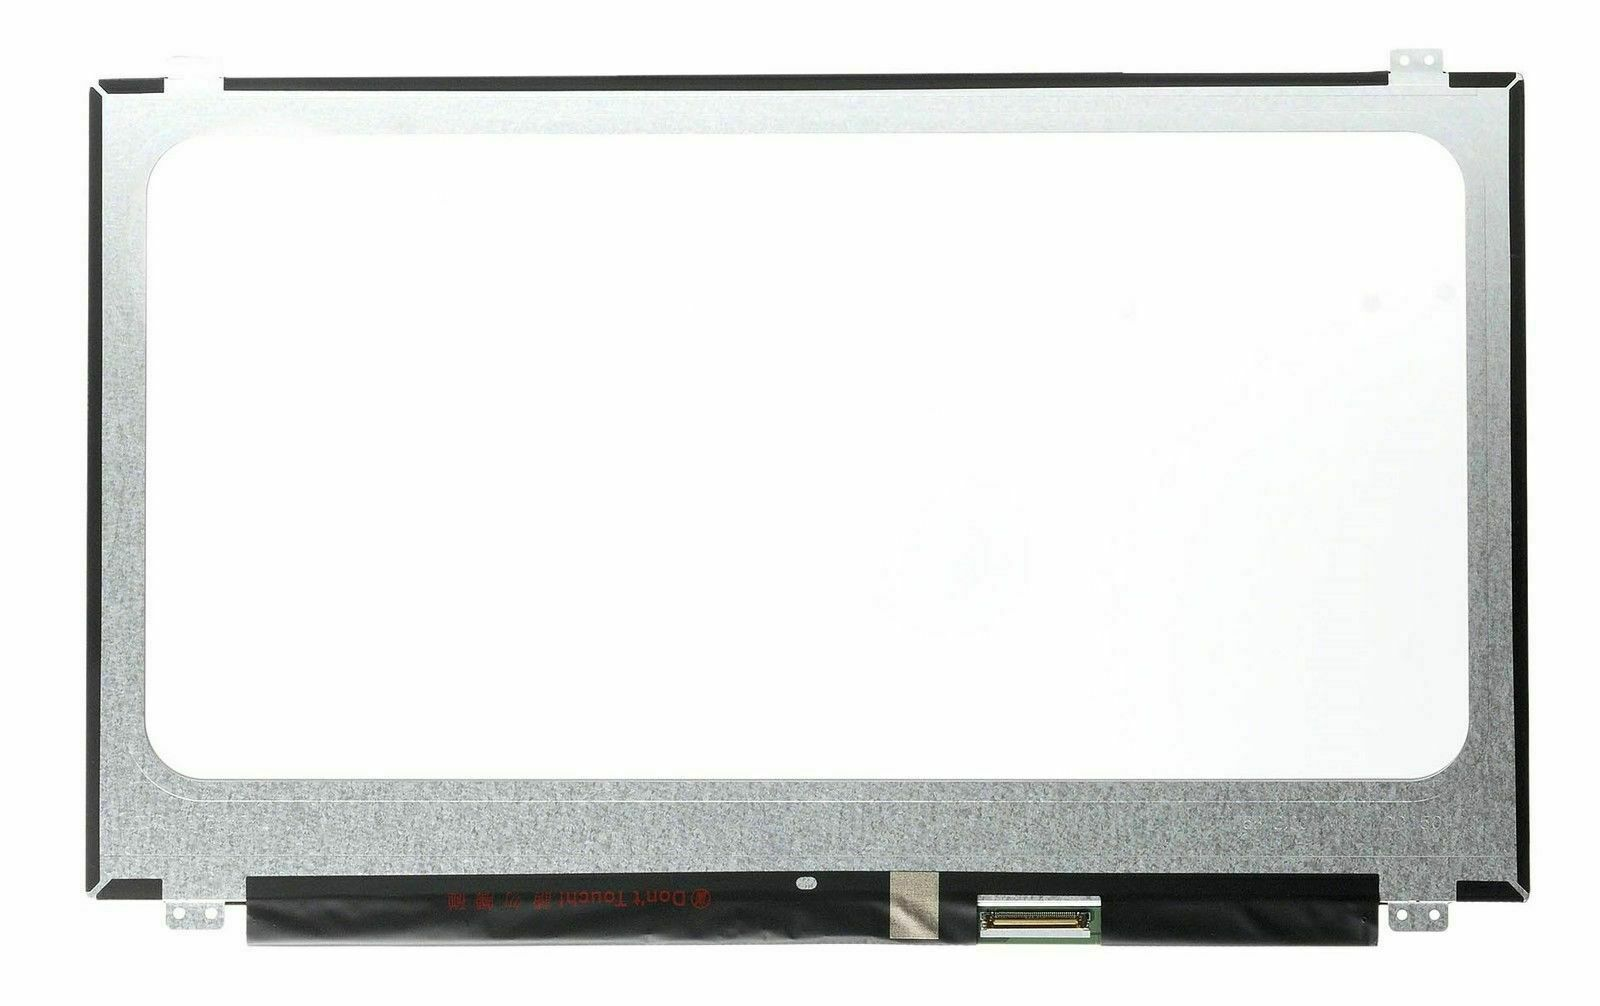 Dell Inspiron 3452 Latitude 3470 LCD Touch Screen Panel XRH7R HD Grade A+ Tested - $89.92